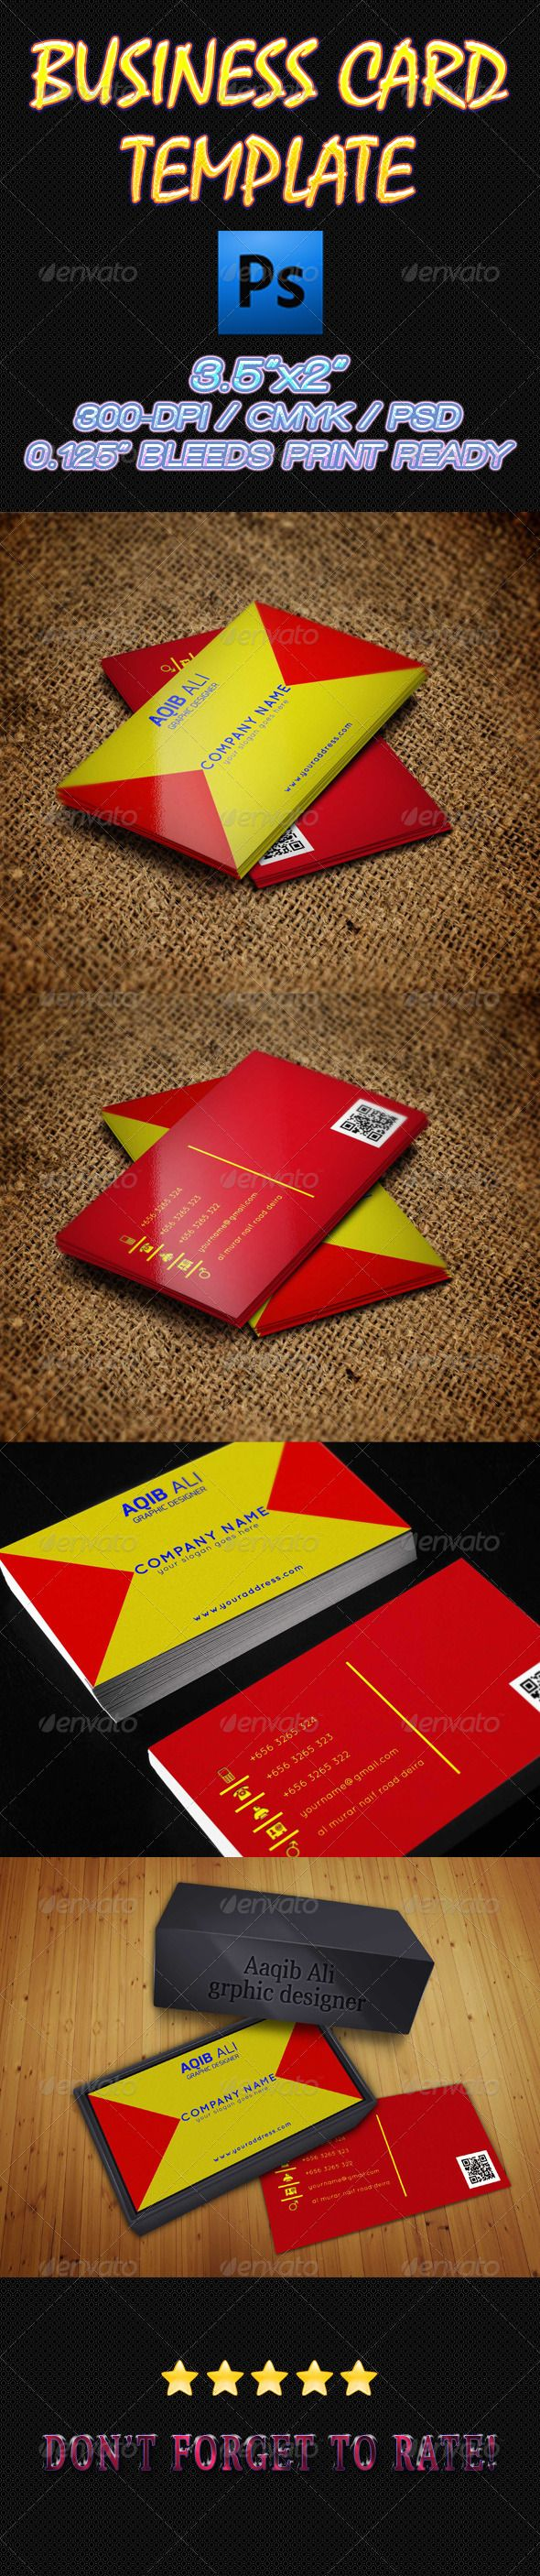 7 best Business Cards Template images on Pinterest | Business card ...